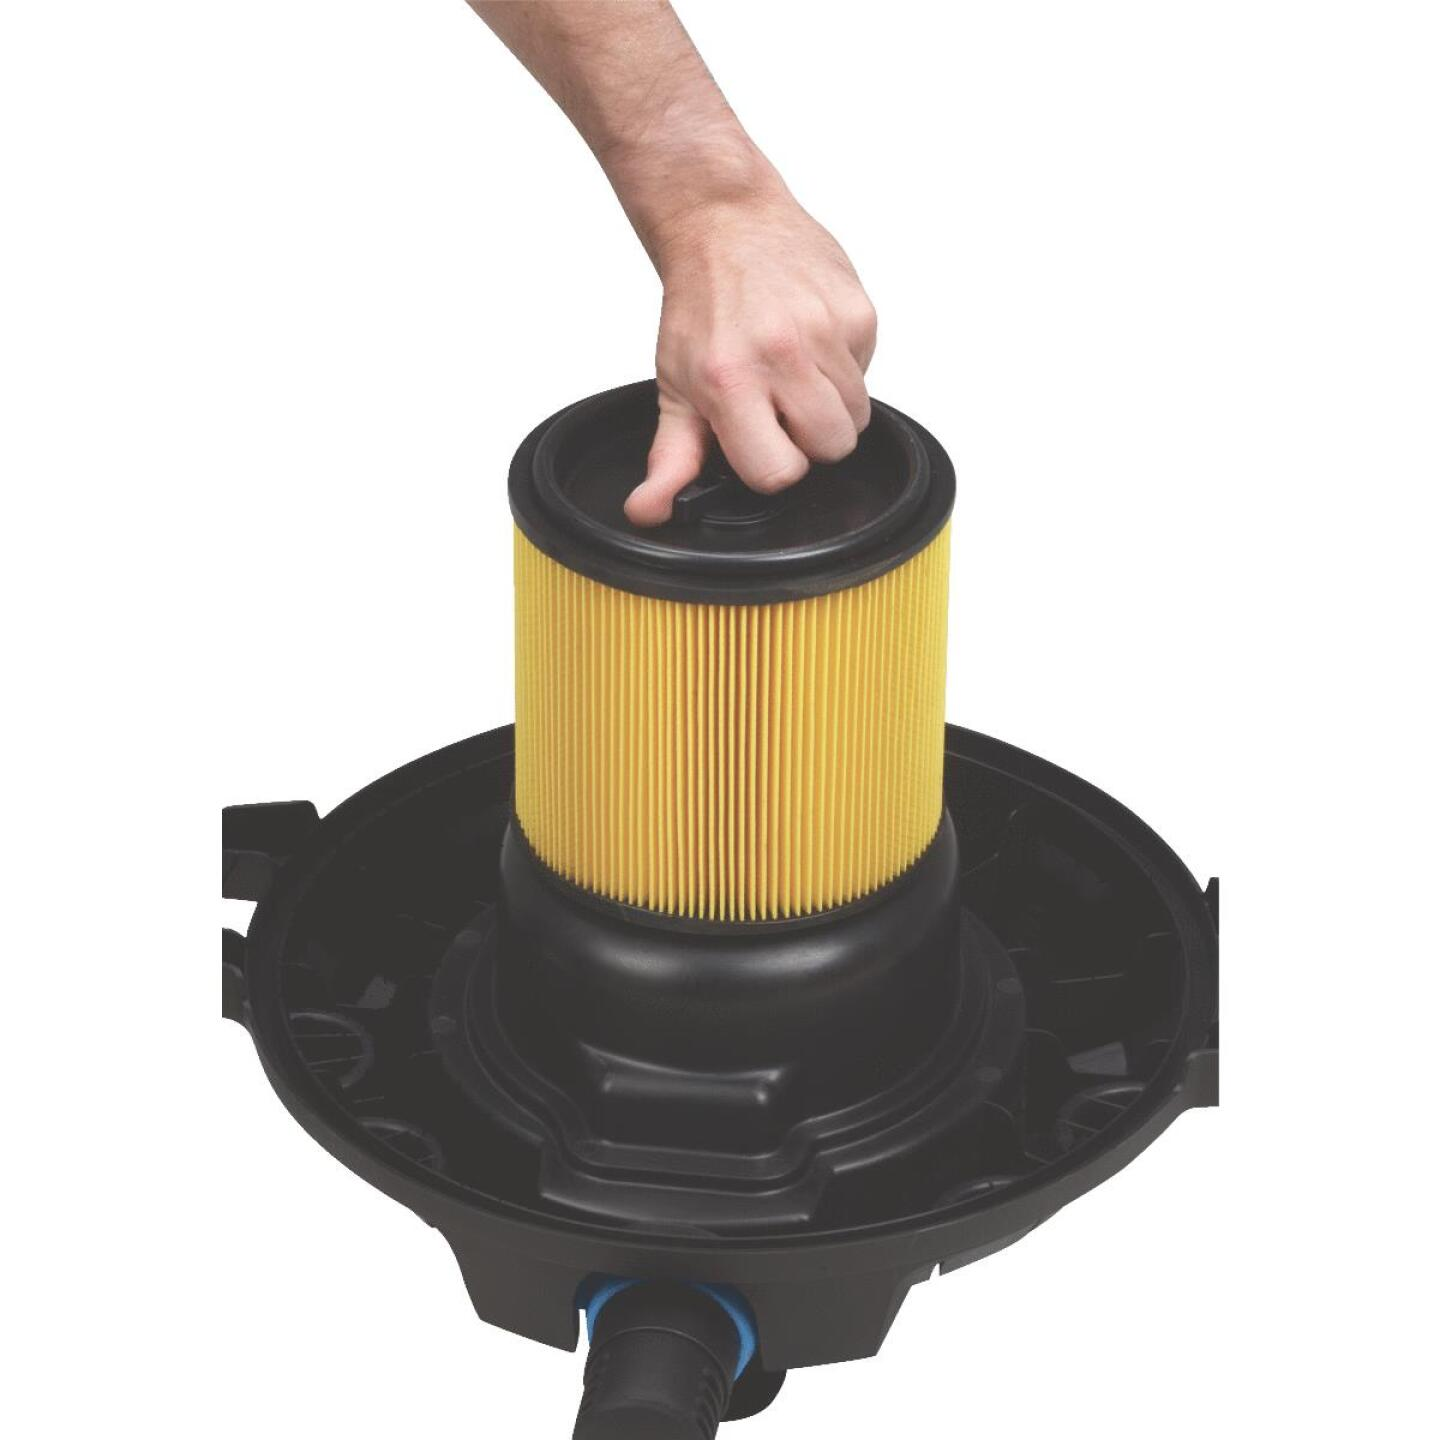 Channellock Cartridge Standard 5 to 25 Gal. Vacuum Filter Image 3